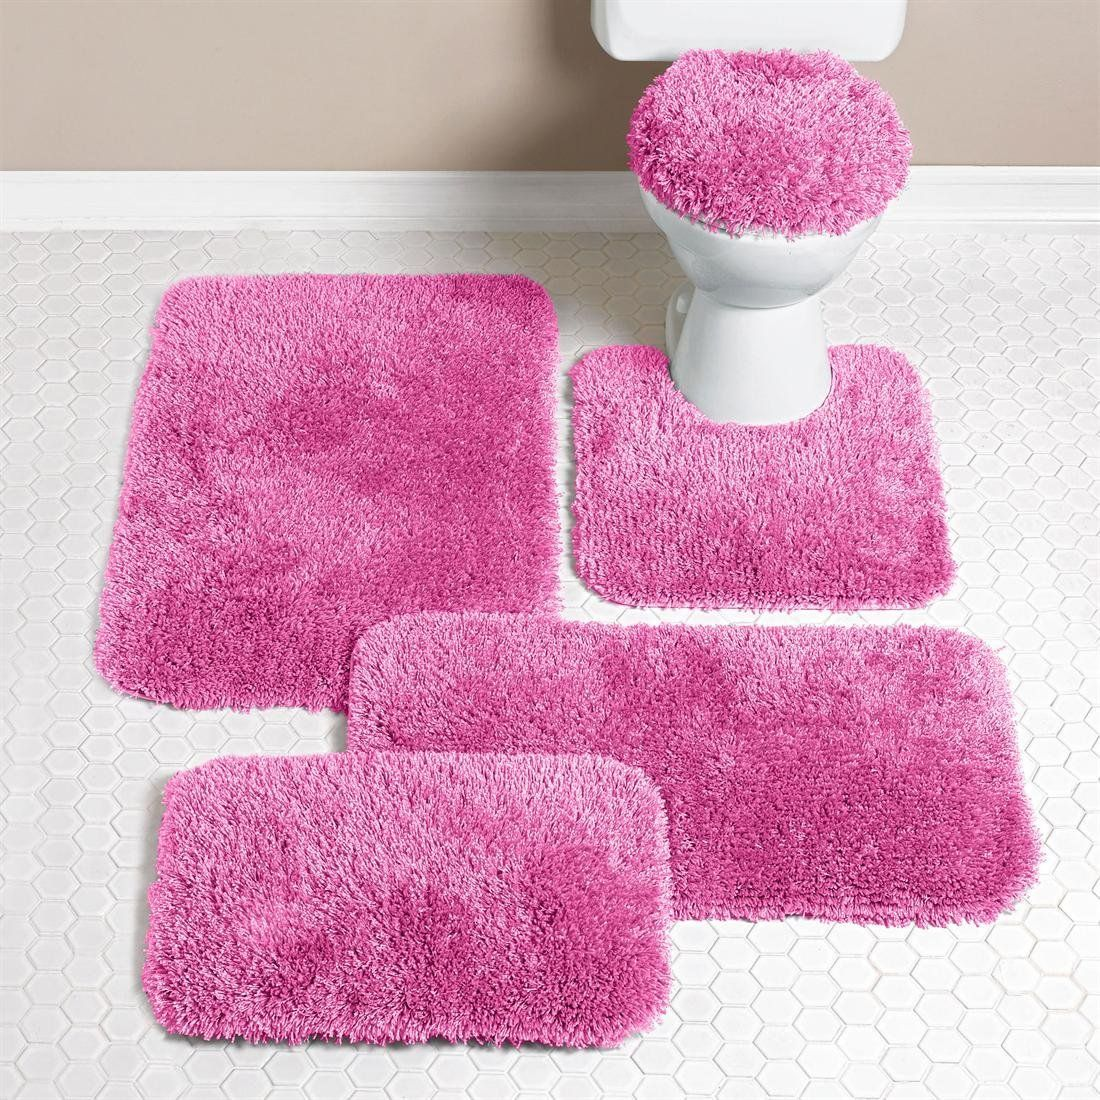 Bathroom Rugs And Accessories Youtube: Pink Bathroom Accessories